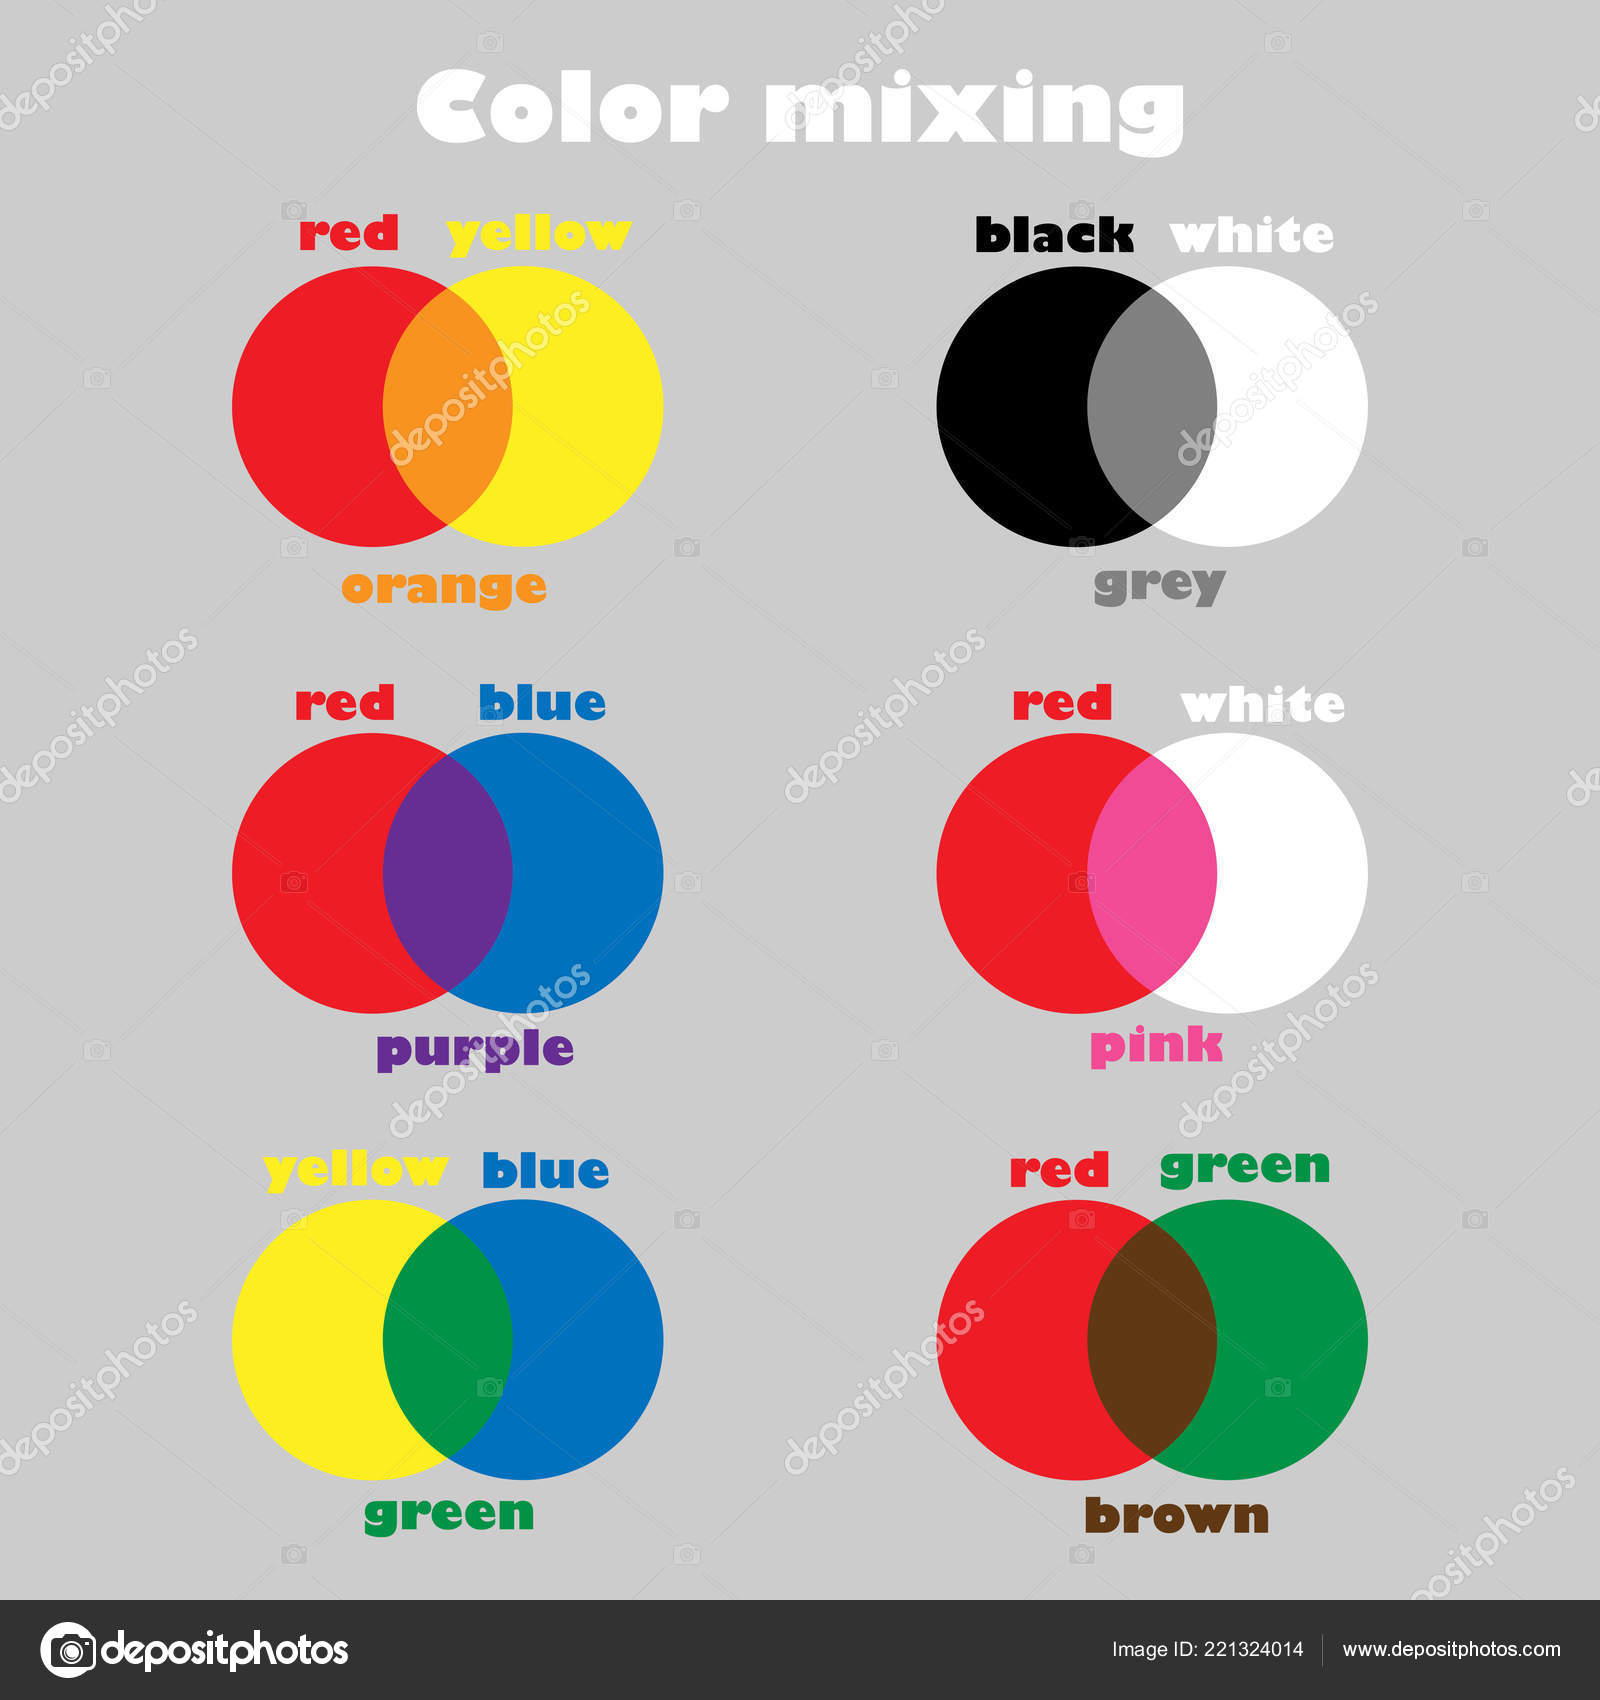 Learning Colors Mixing Children Fun Education Game Kids Preschool Worksheet